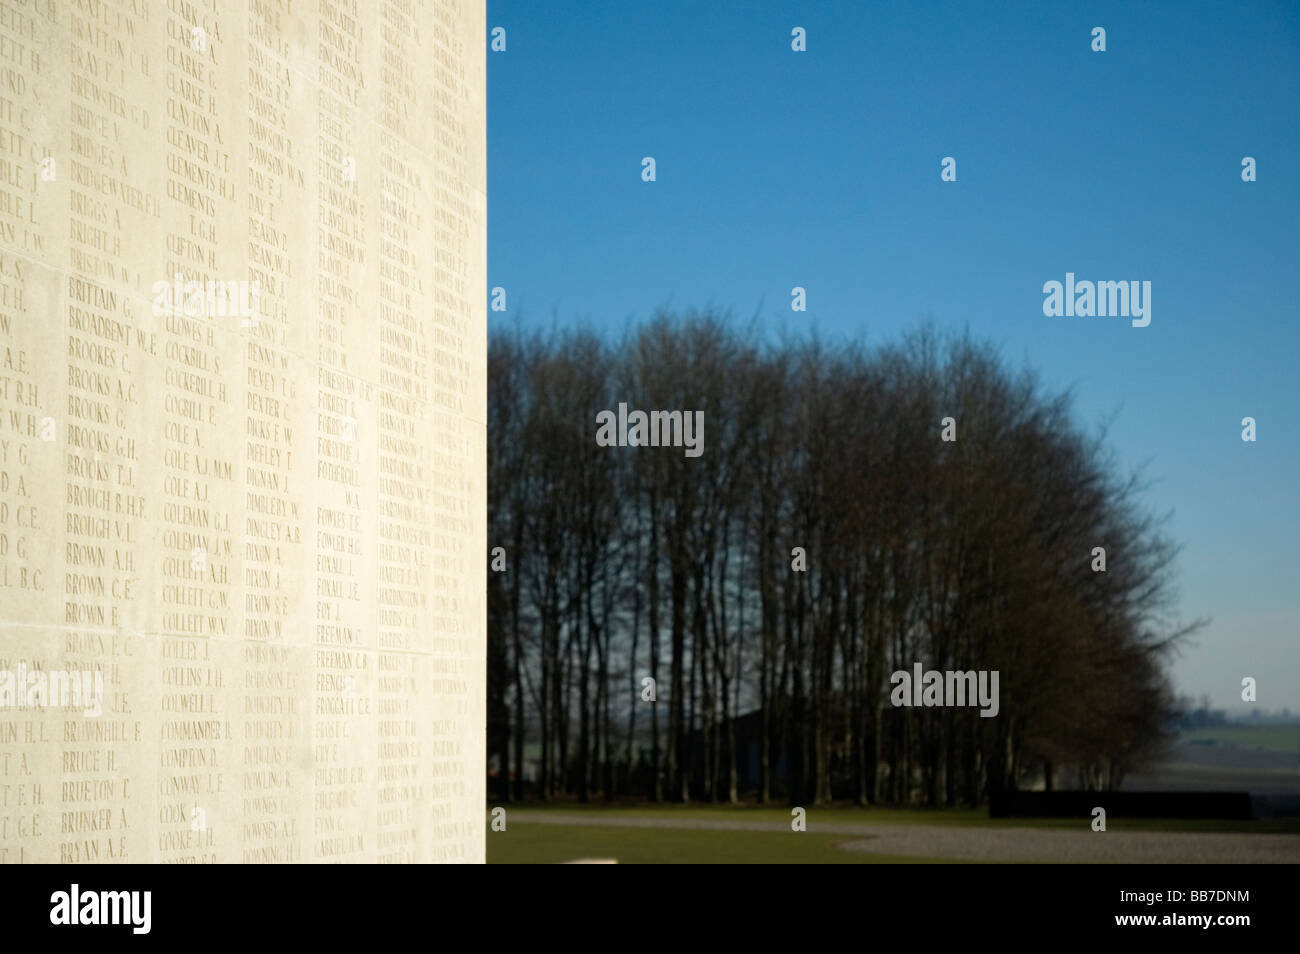 Names of the missing from the battle of the Somme engraved on the Thiepval memorial in northern France. - Stock Image